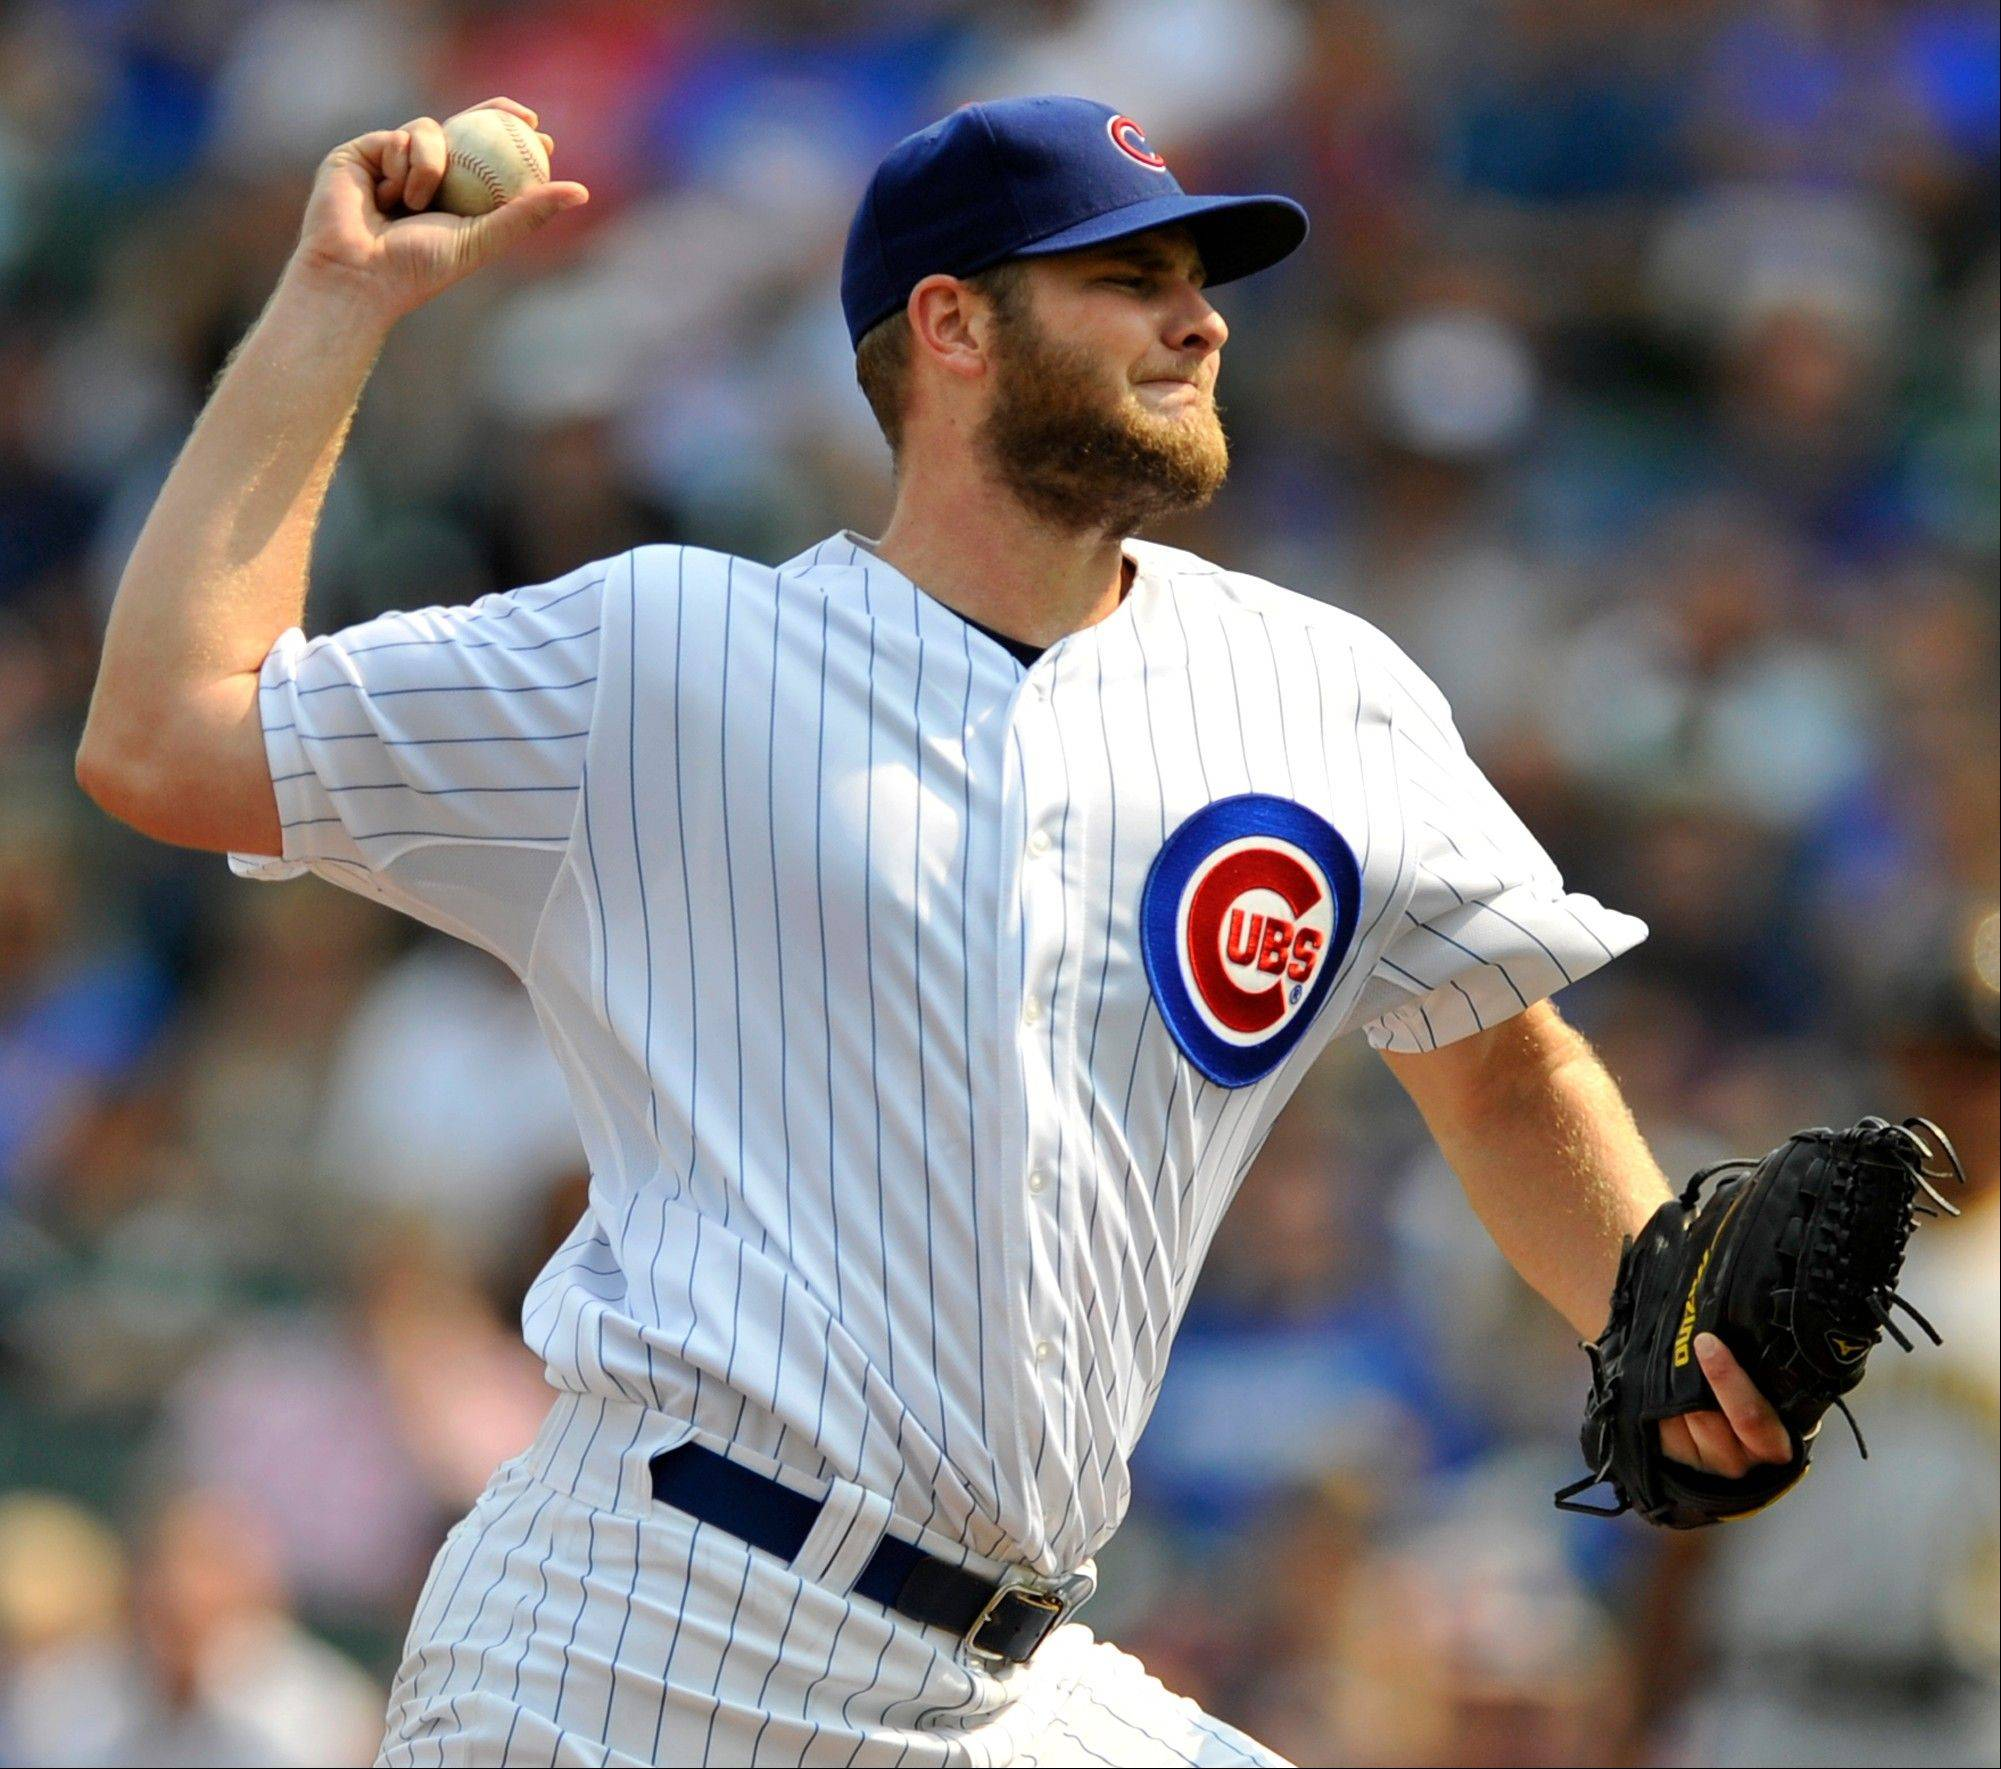 Cubs starter Chris Volstad delivers a pitch in Sunday's first inning at Wrigley Field.